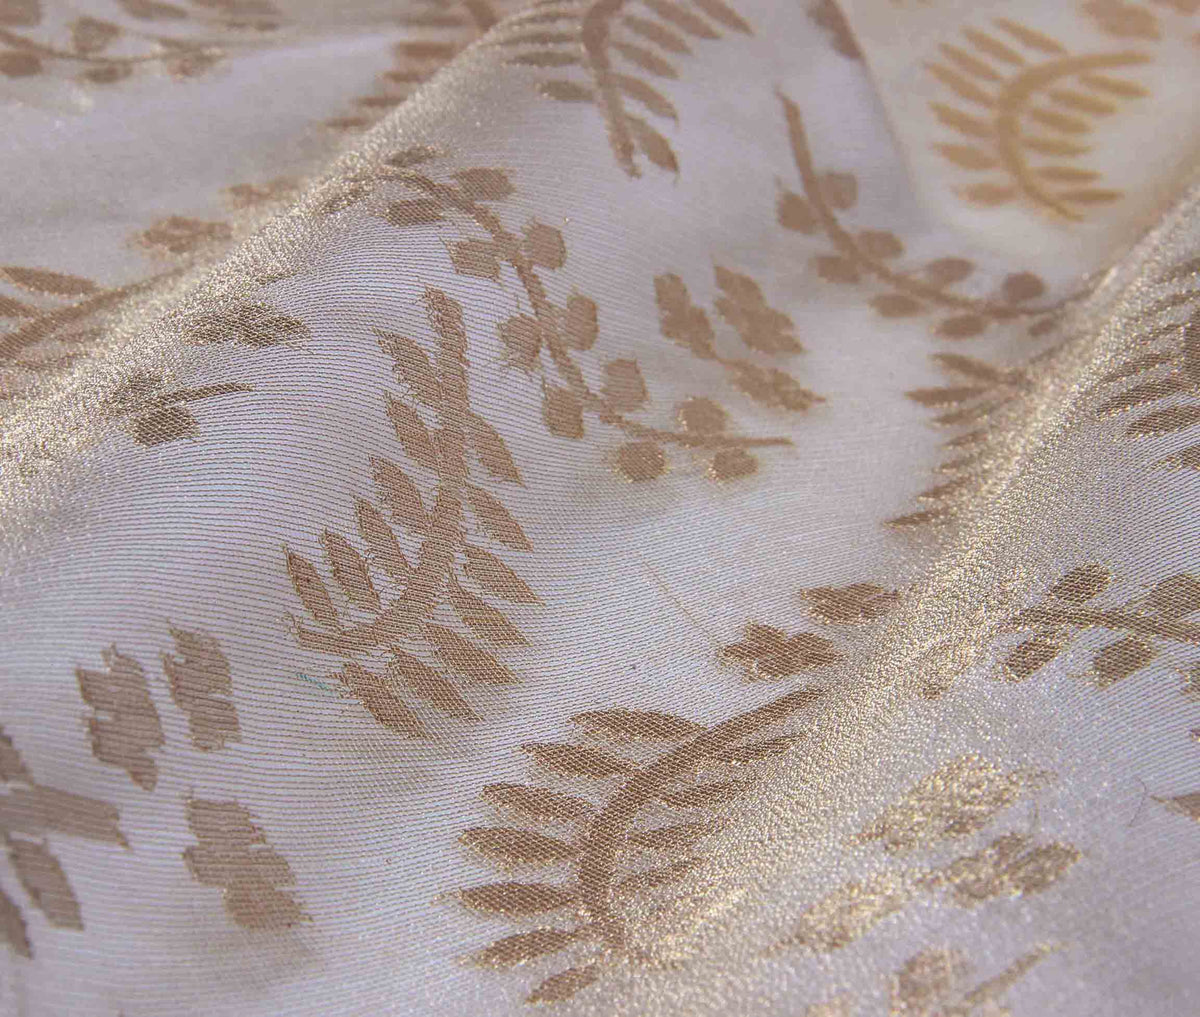 Beige Kora Silk Net tissue handwoven Banarasi saree with stylized leaf motifs (3) closeup